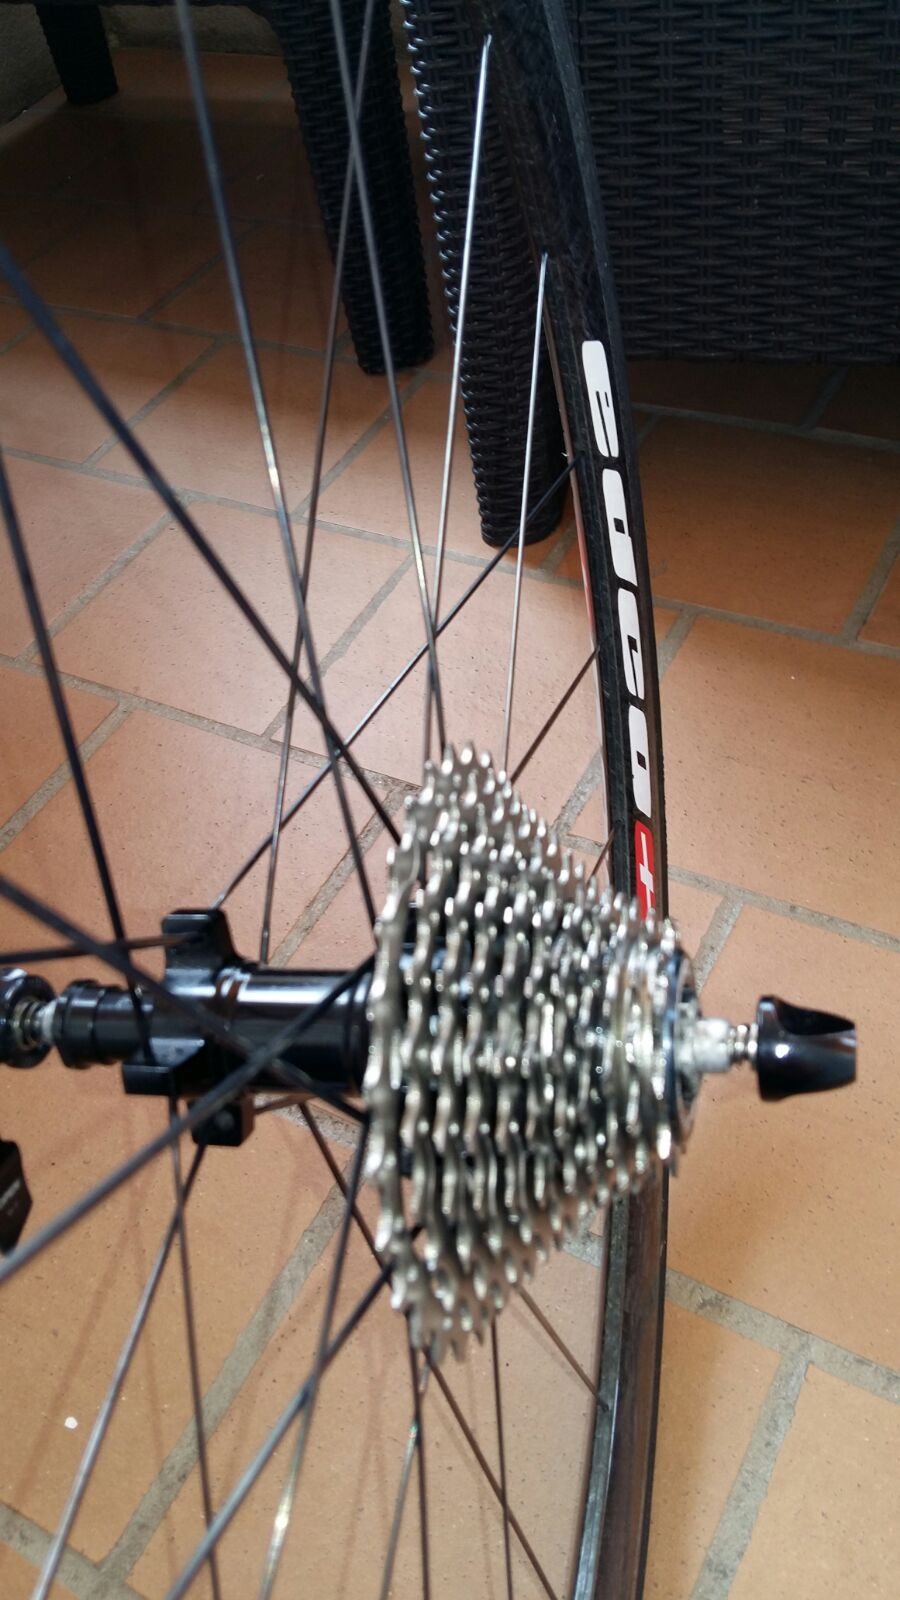 WhatsApp Image 2017-06-04 at 11.27.19